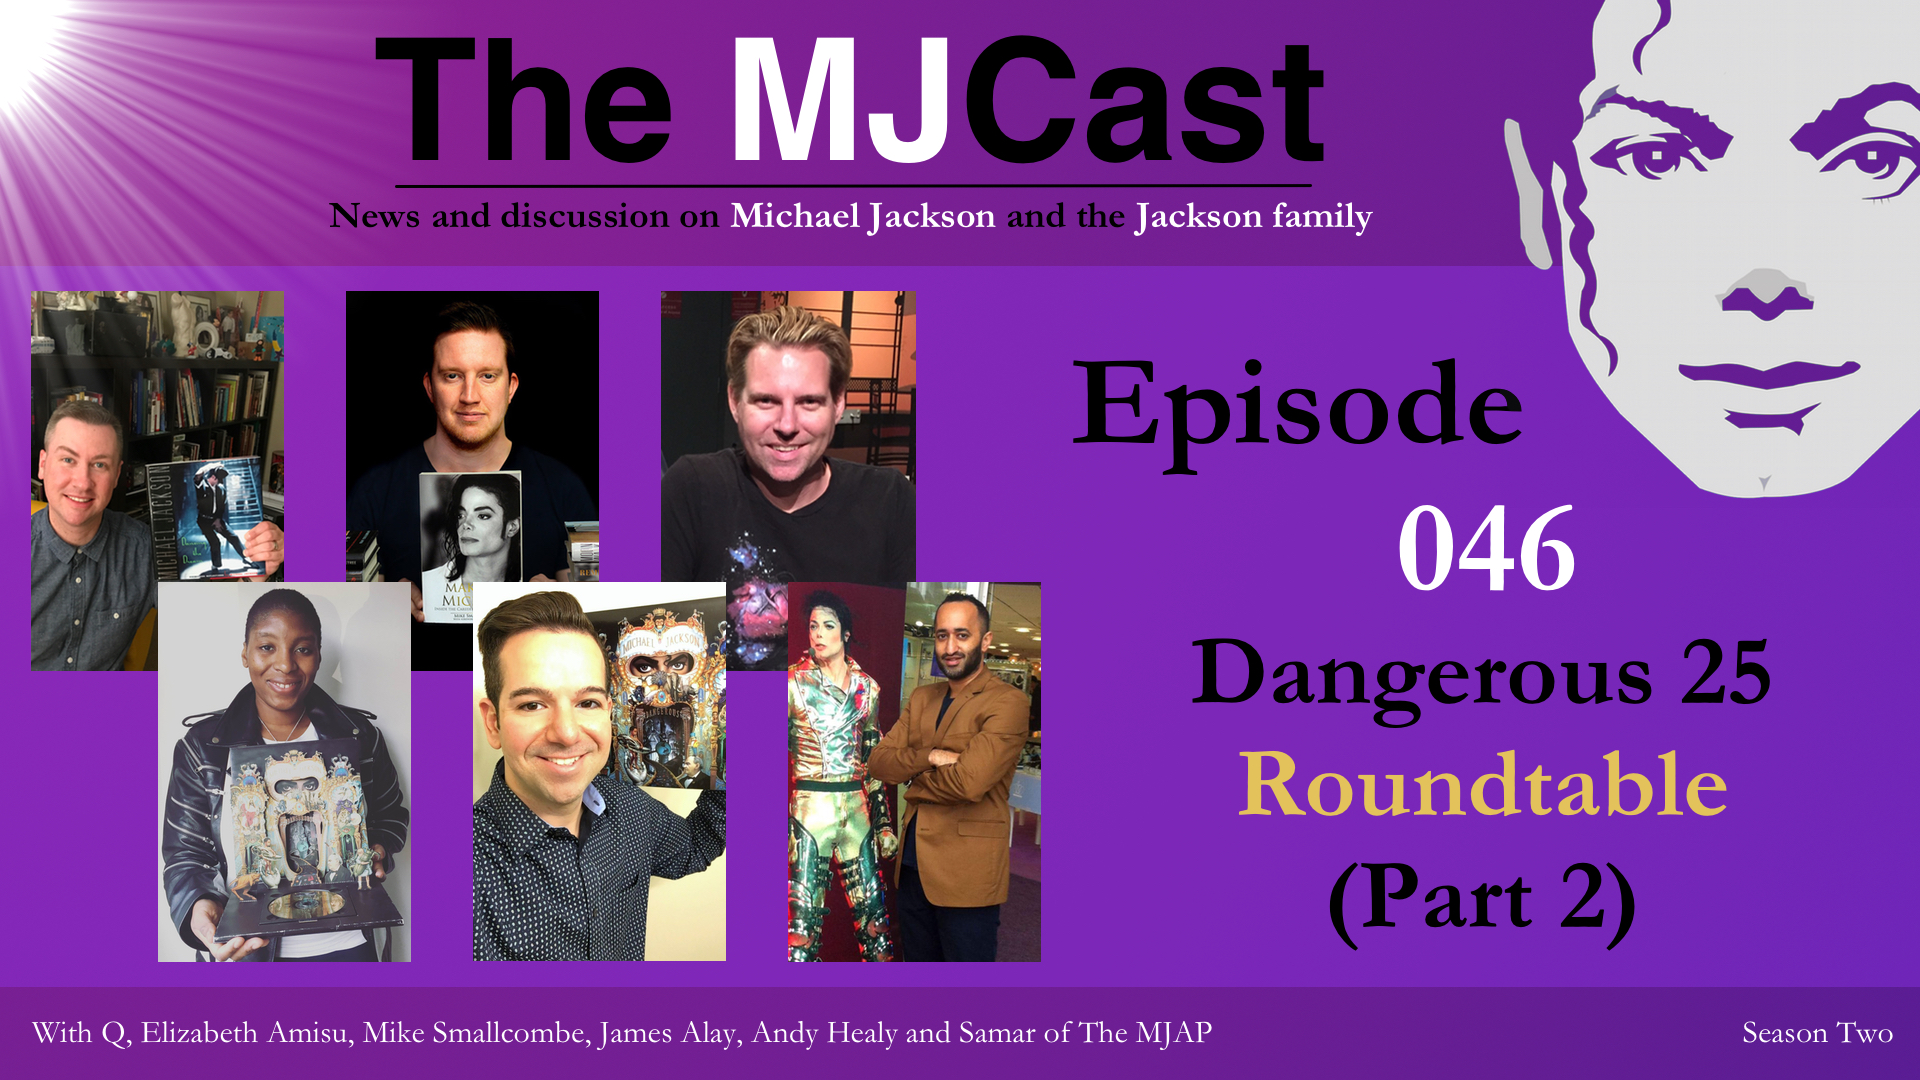 episode-046-dangerous-25-roundtable-part-2-show-art-2